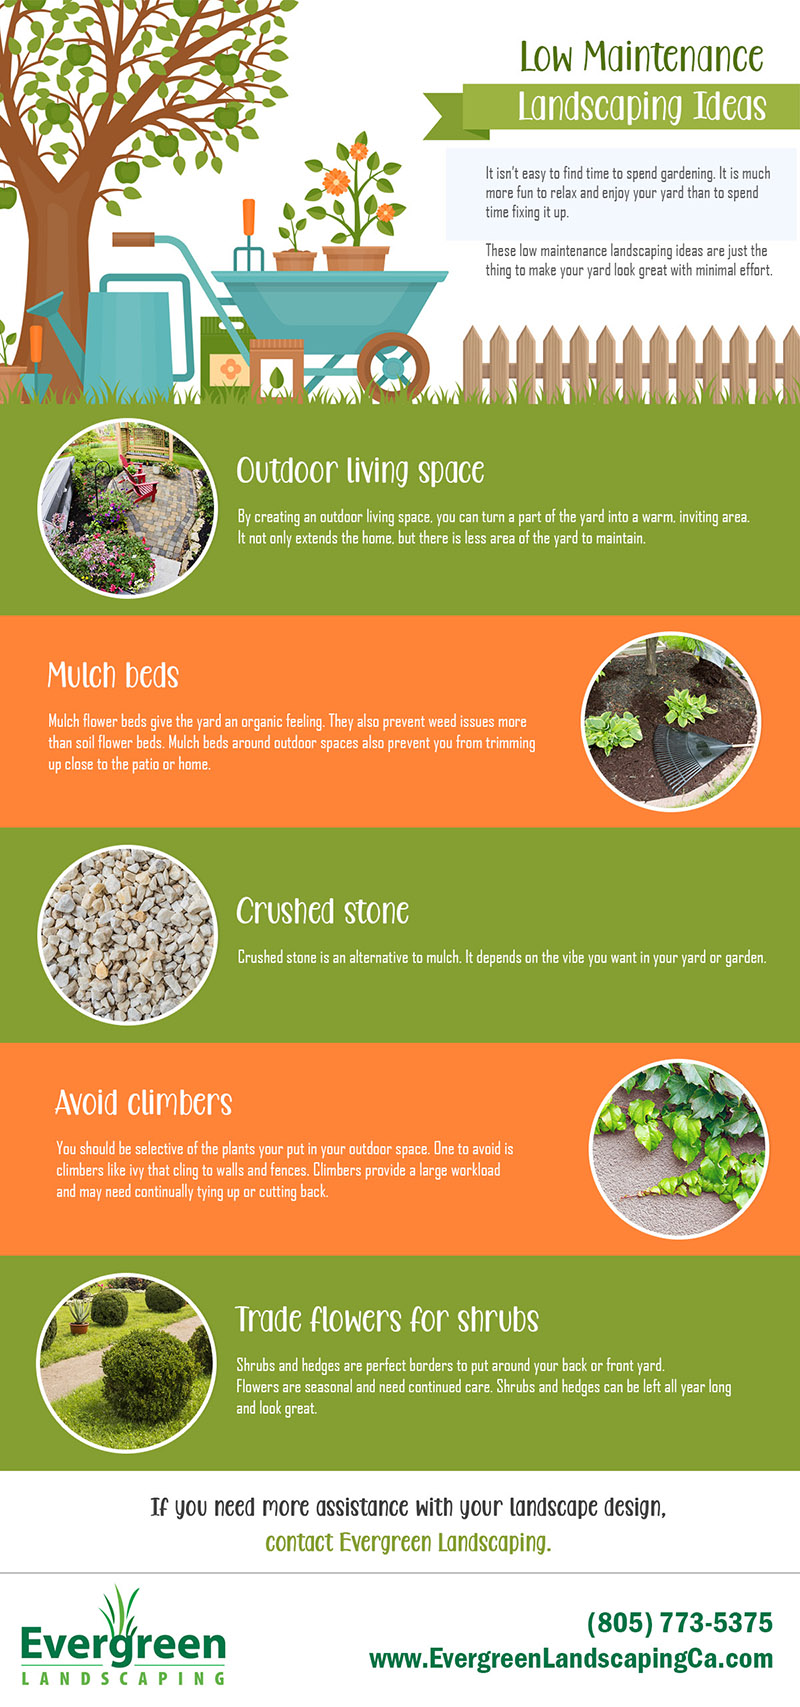 Low Maintenance Landscaping Ideas Infographic Evergreen